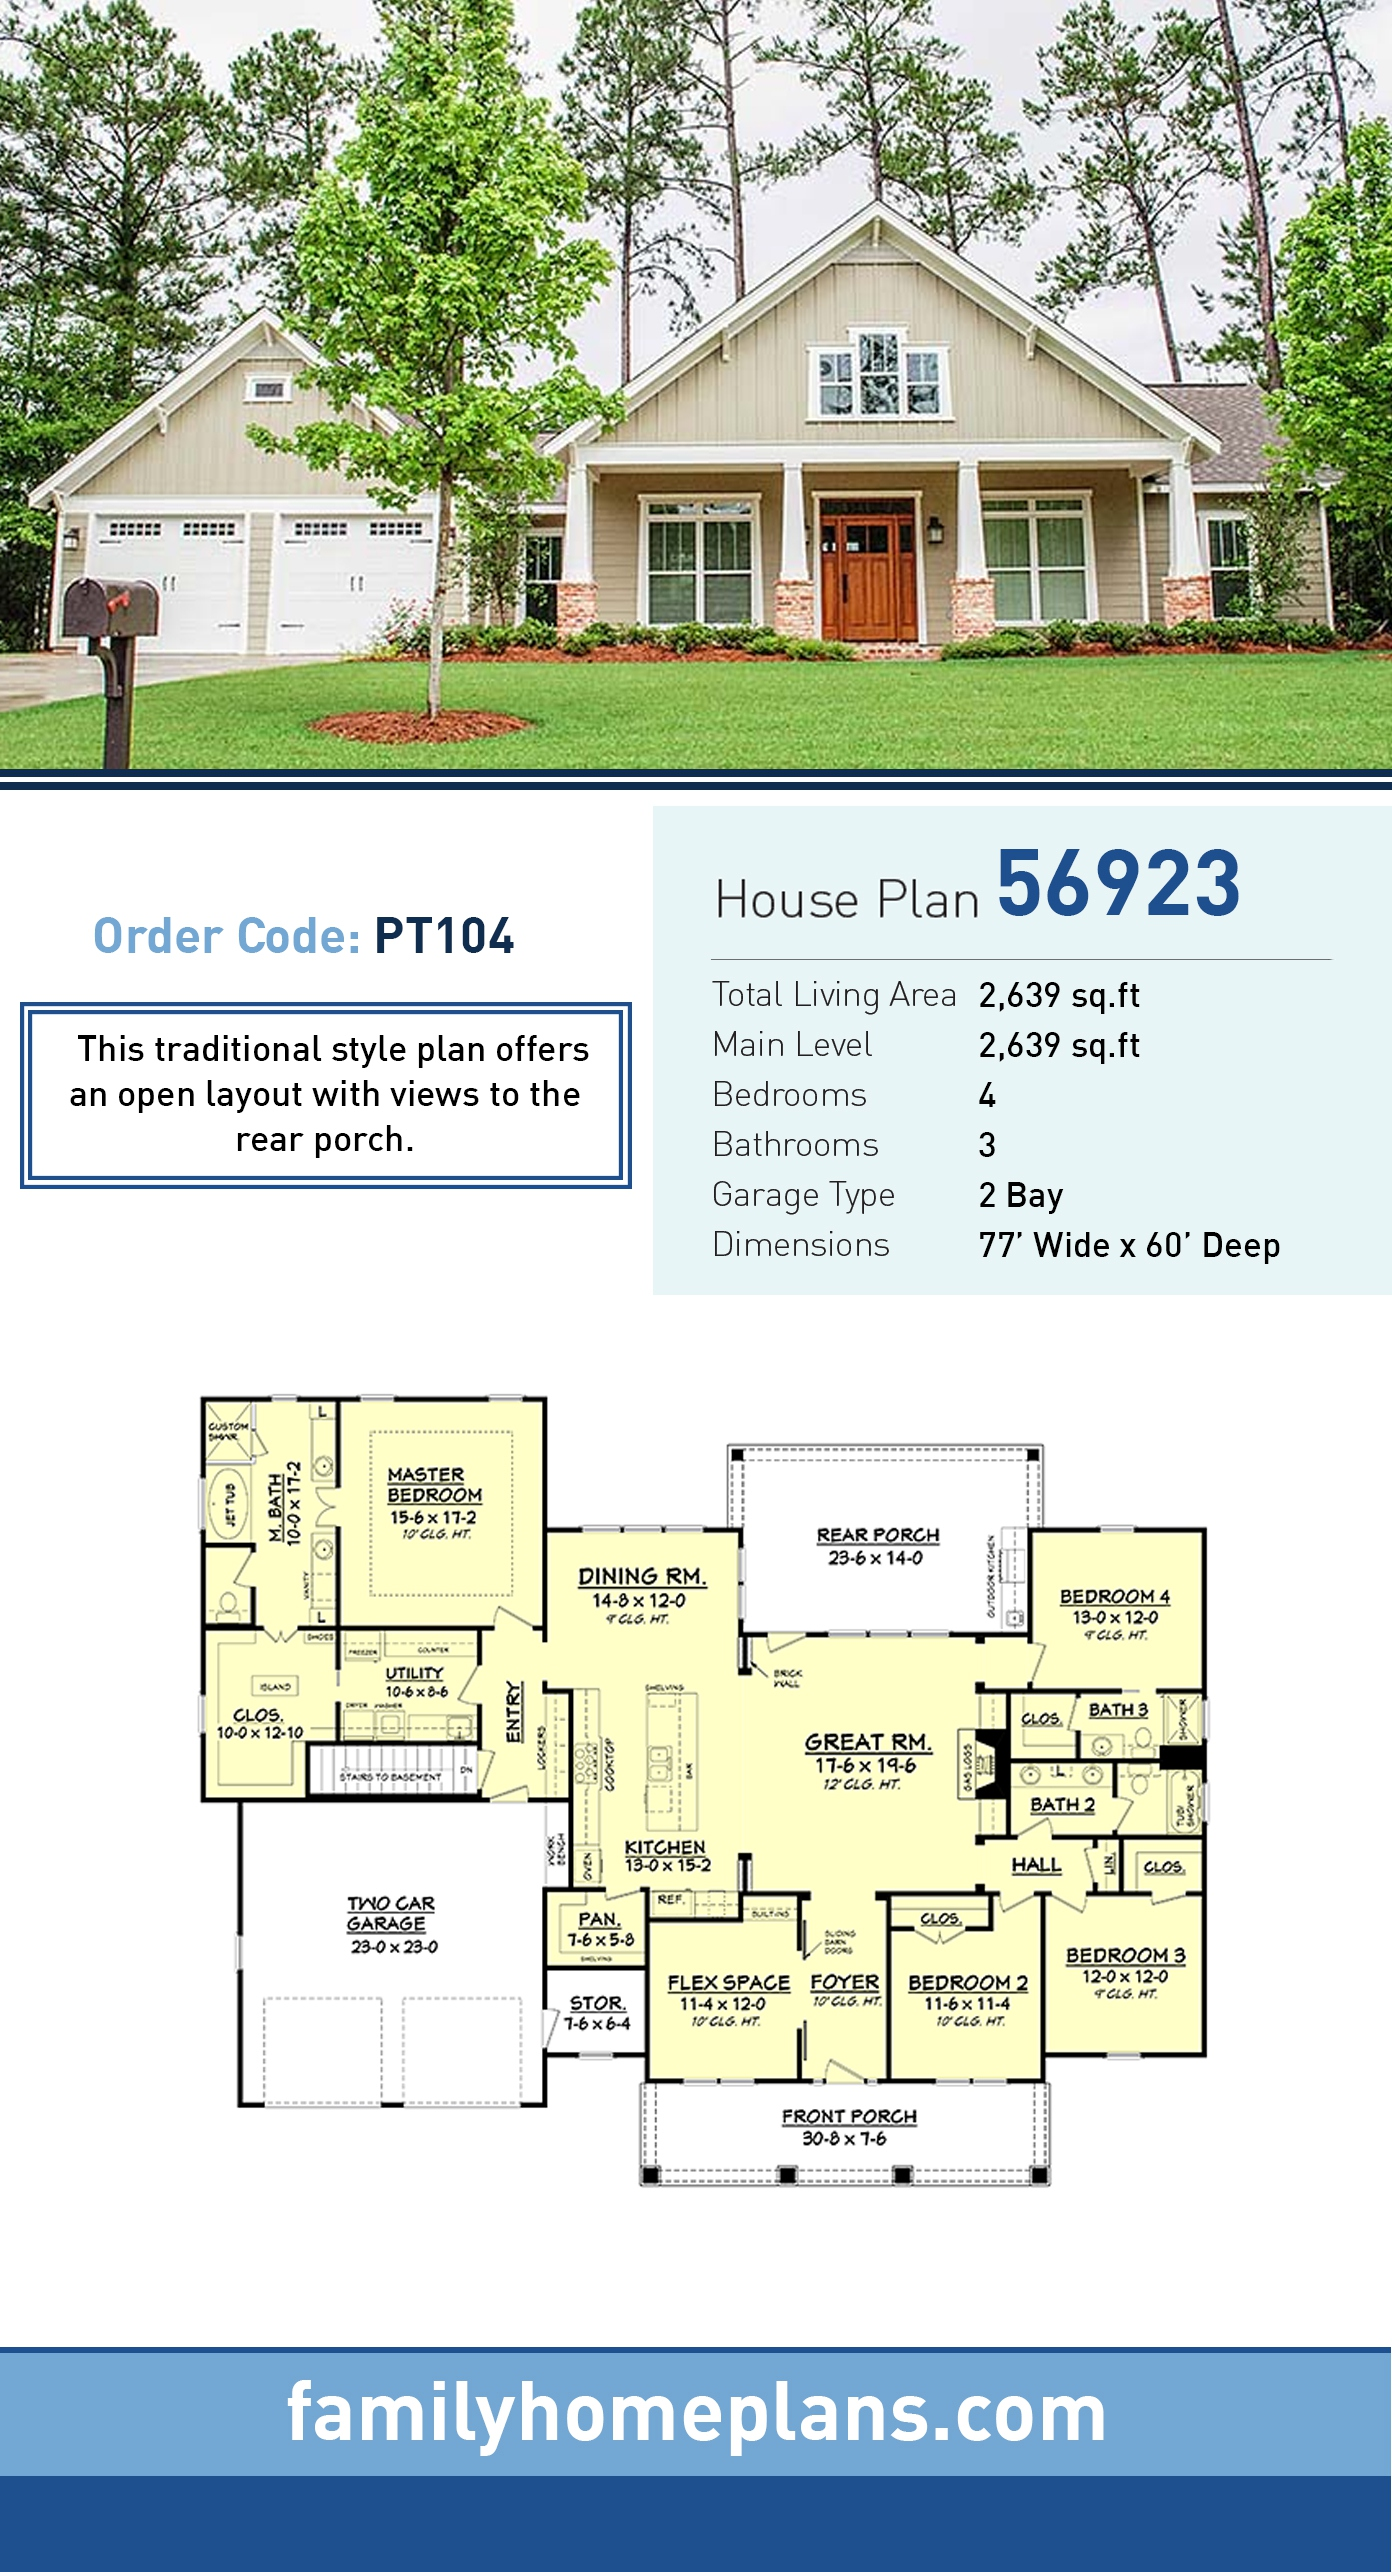 Country, Ranch, Traditional House Plan 56923 with 4 Beds, 3 Baths, 2 Car Garage